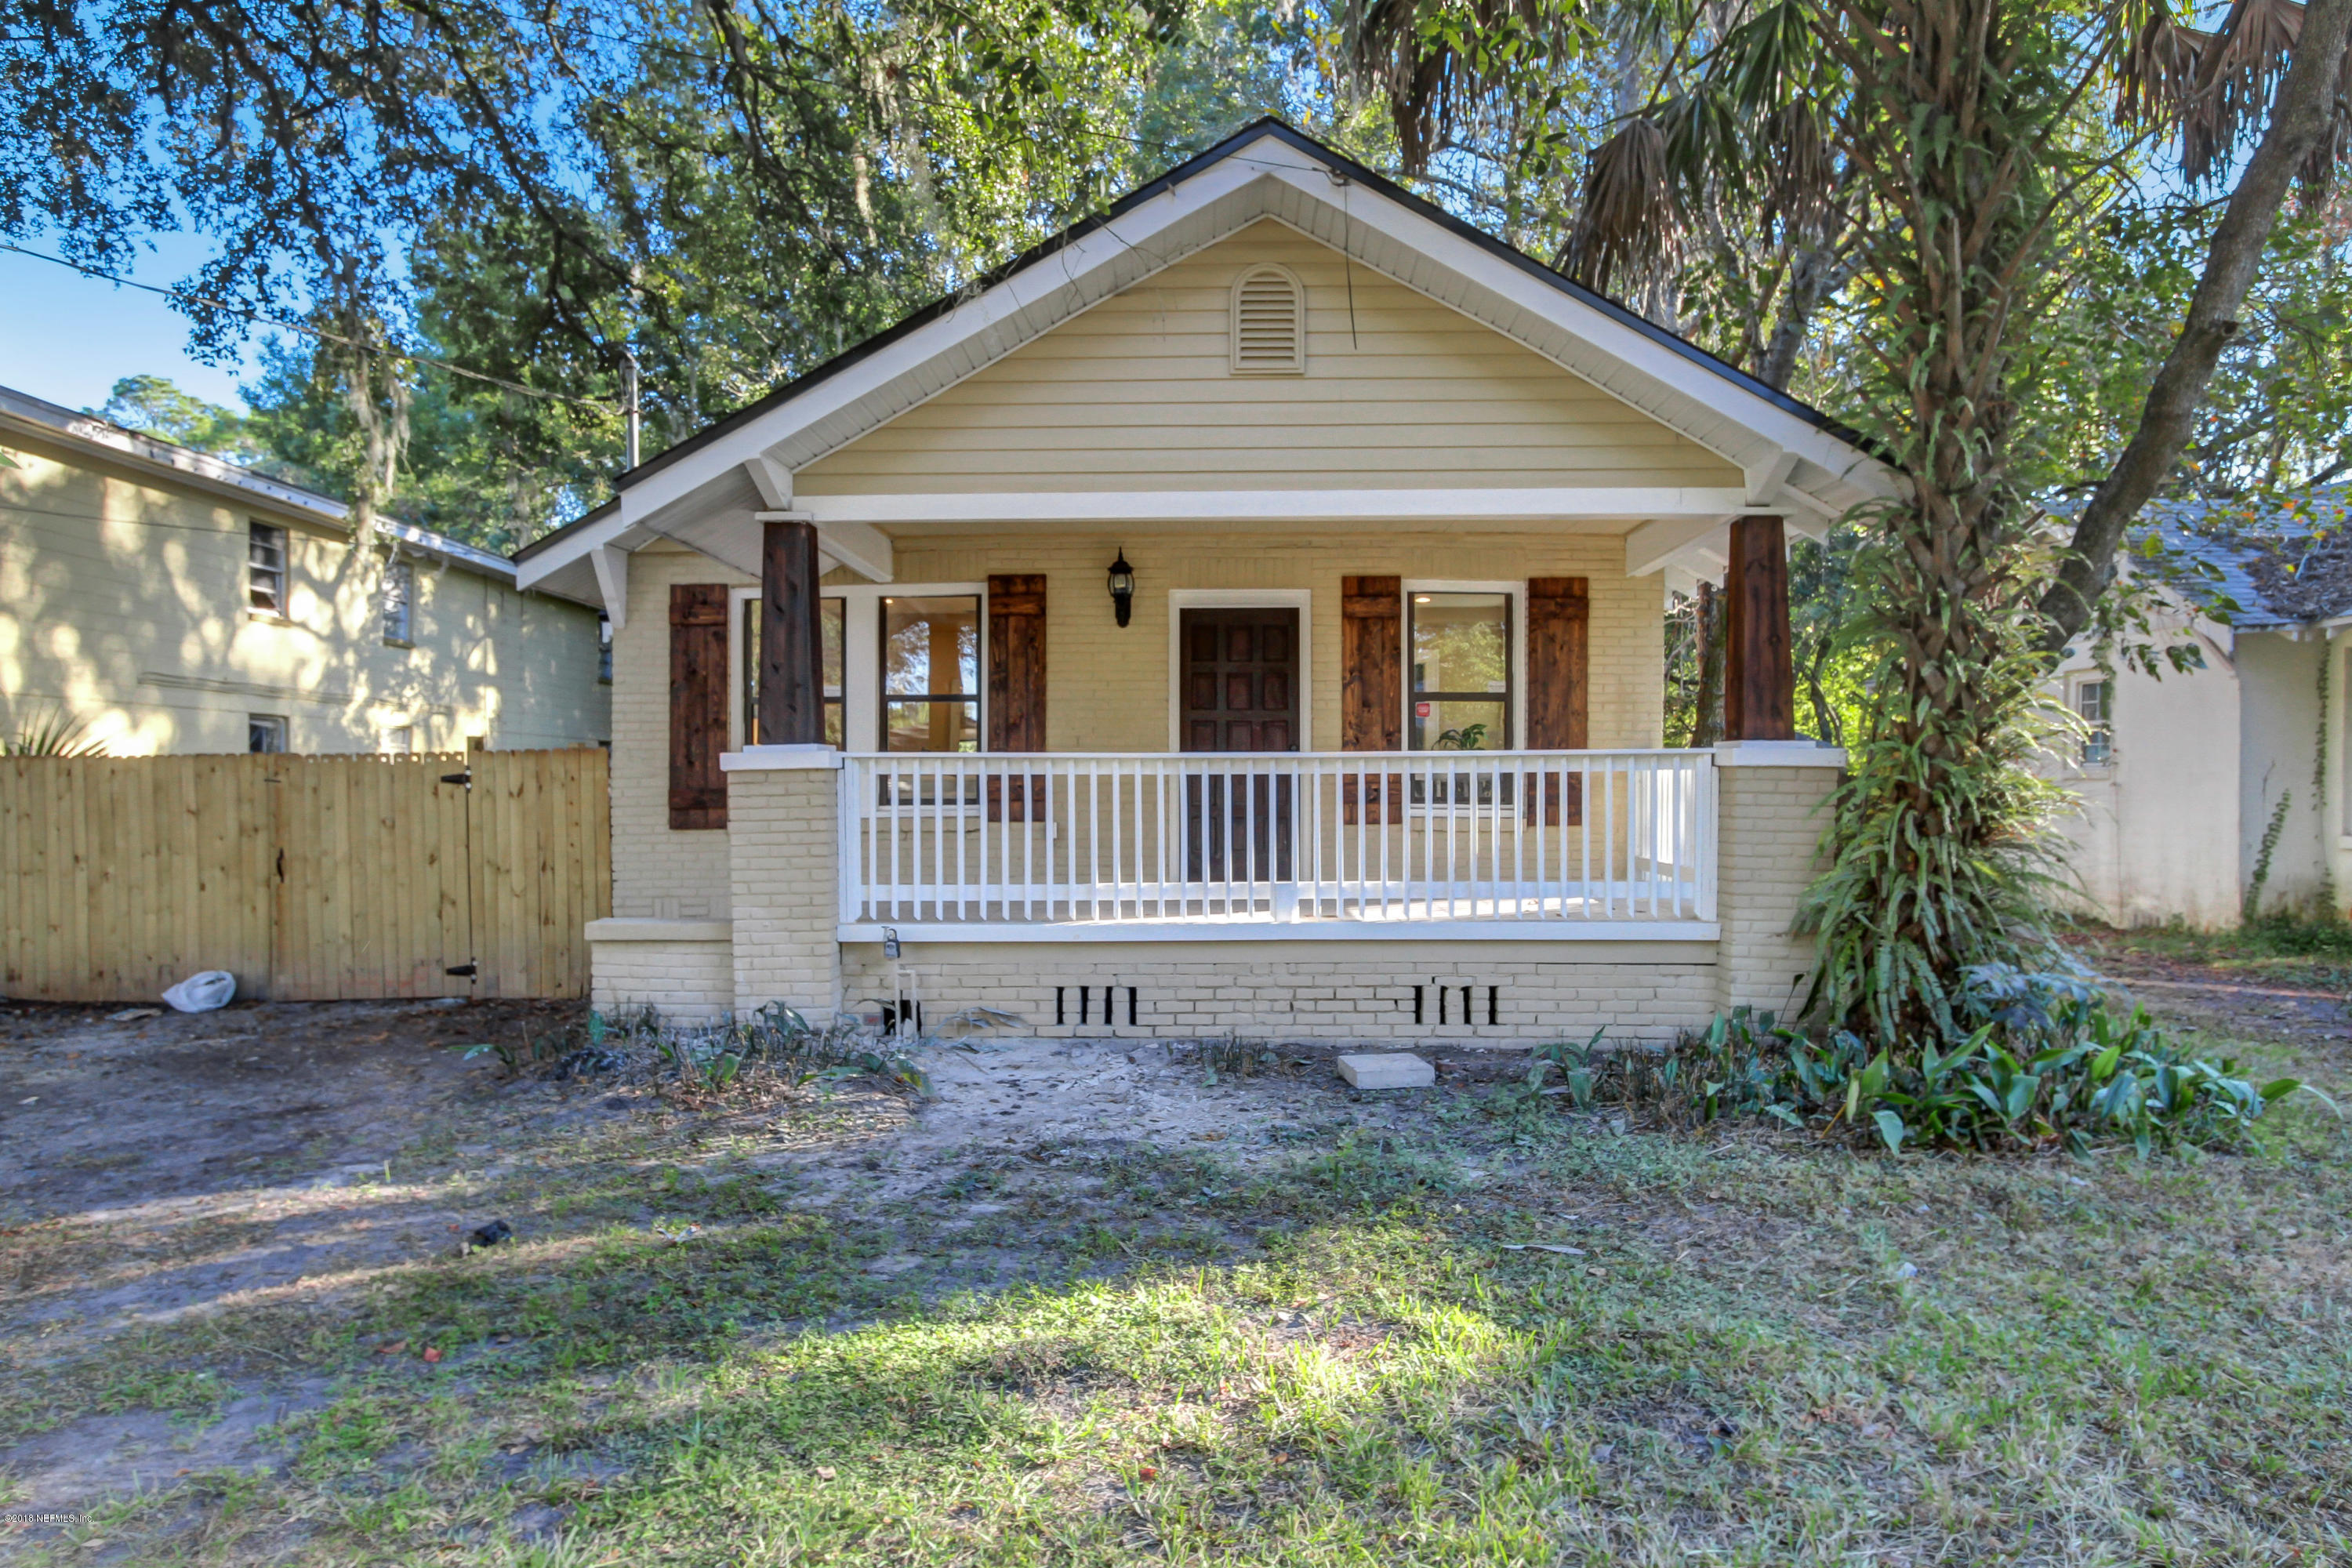 4814 KINGSBURY, JACKSONVILLE, FLORIDA 32205, 3 Bedrooms Bedrooms, ,2 BathroomsBathrooms,Residential - single family,For sale,KINGSBURY,965331